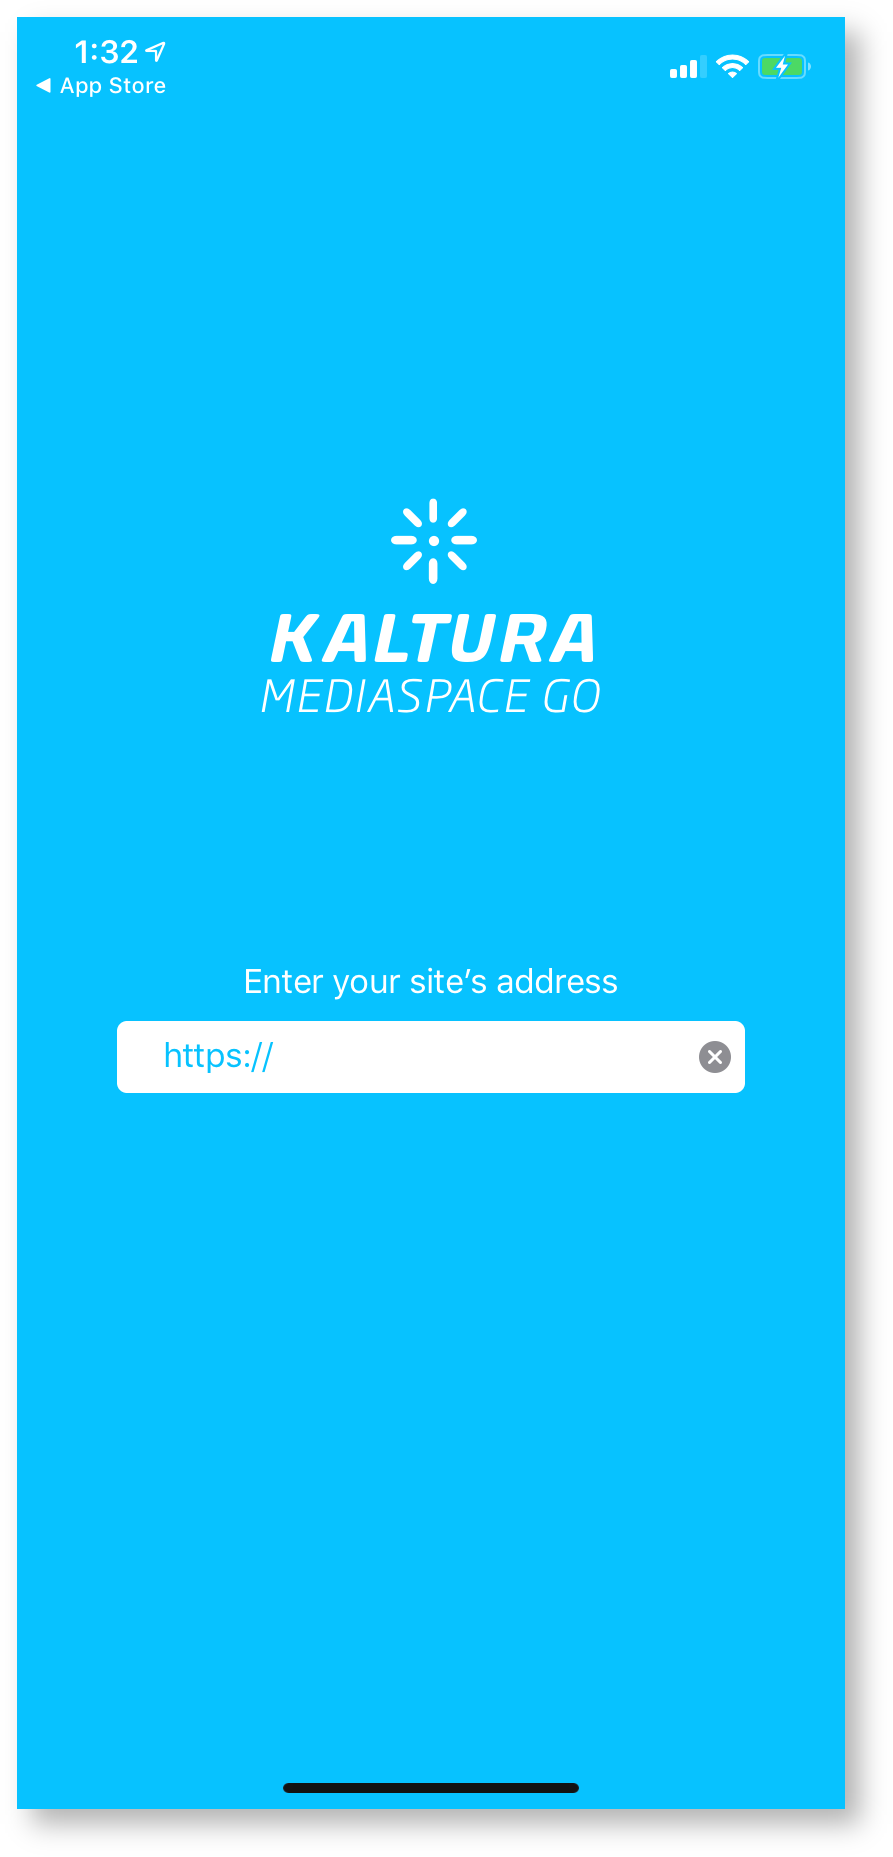 kaltura initial setup screen, enter URL